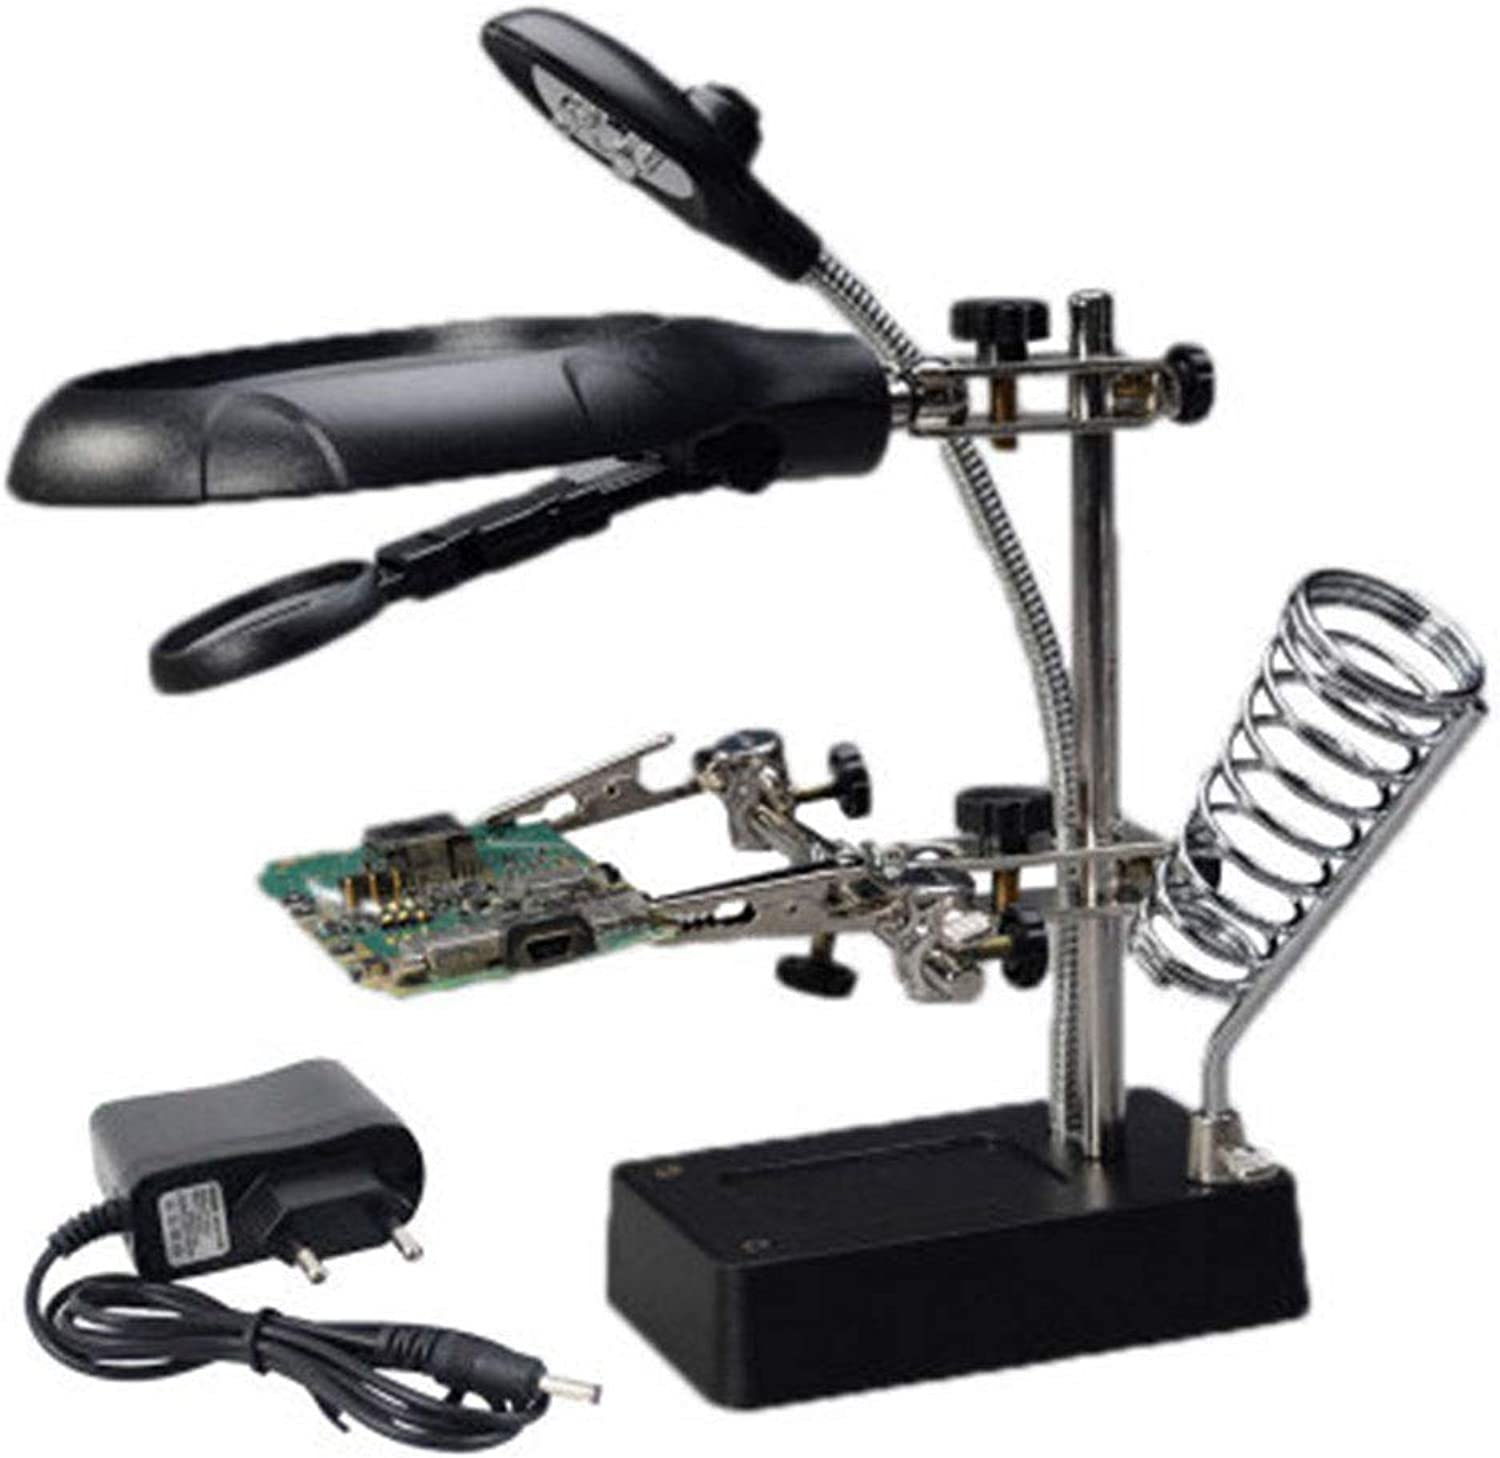 WQING LED Light Helping Hand Magnifier Illuminated Hands Free Magnifying Glass Stand with Clamp and Alligator Clips